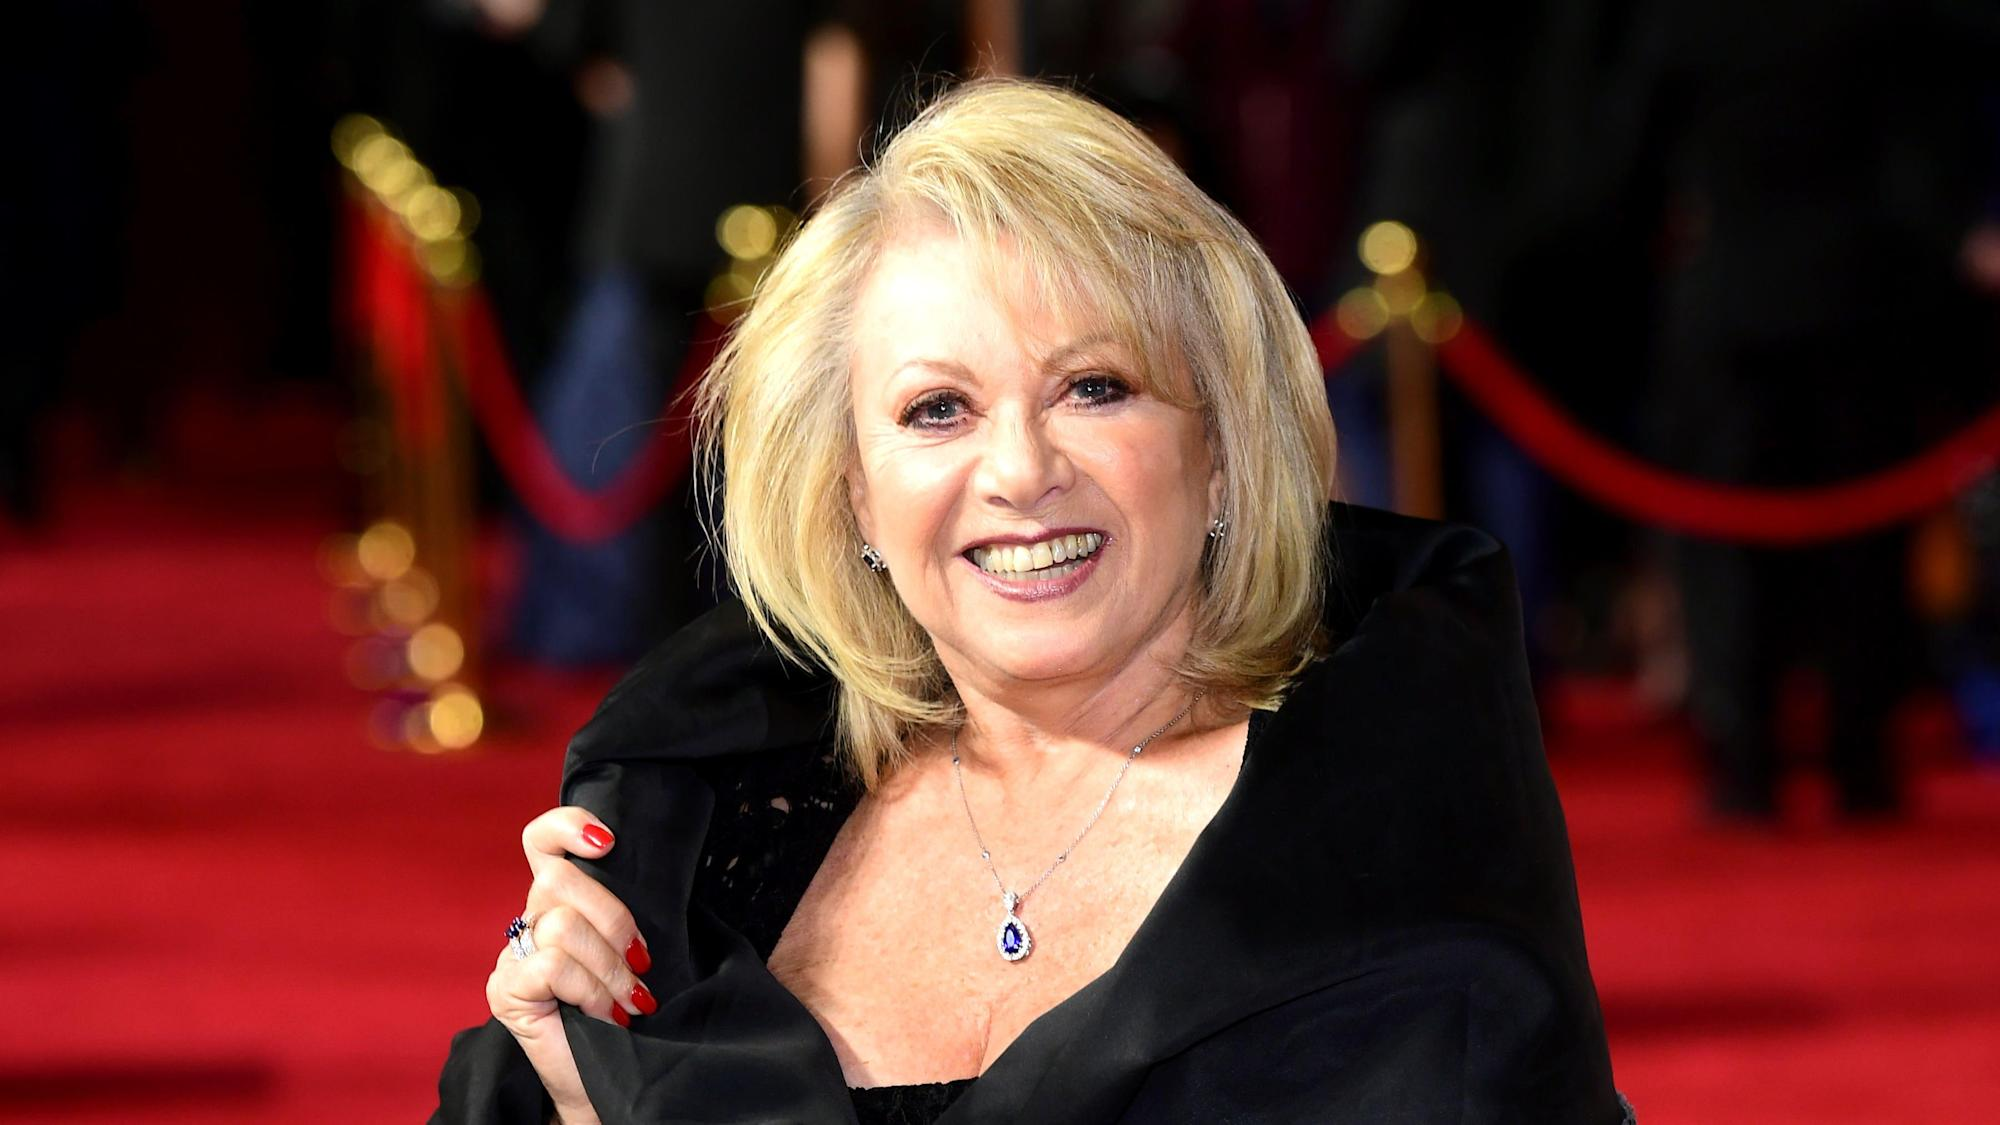 Elaine Paige: Being short has contributed towards my insecurity